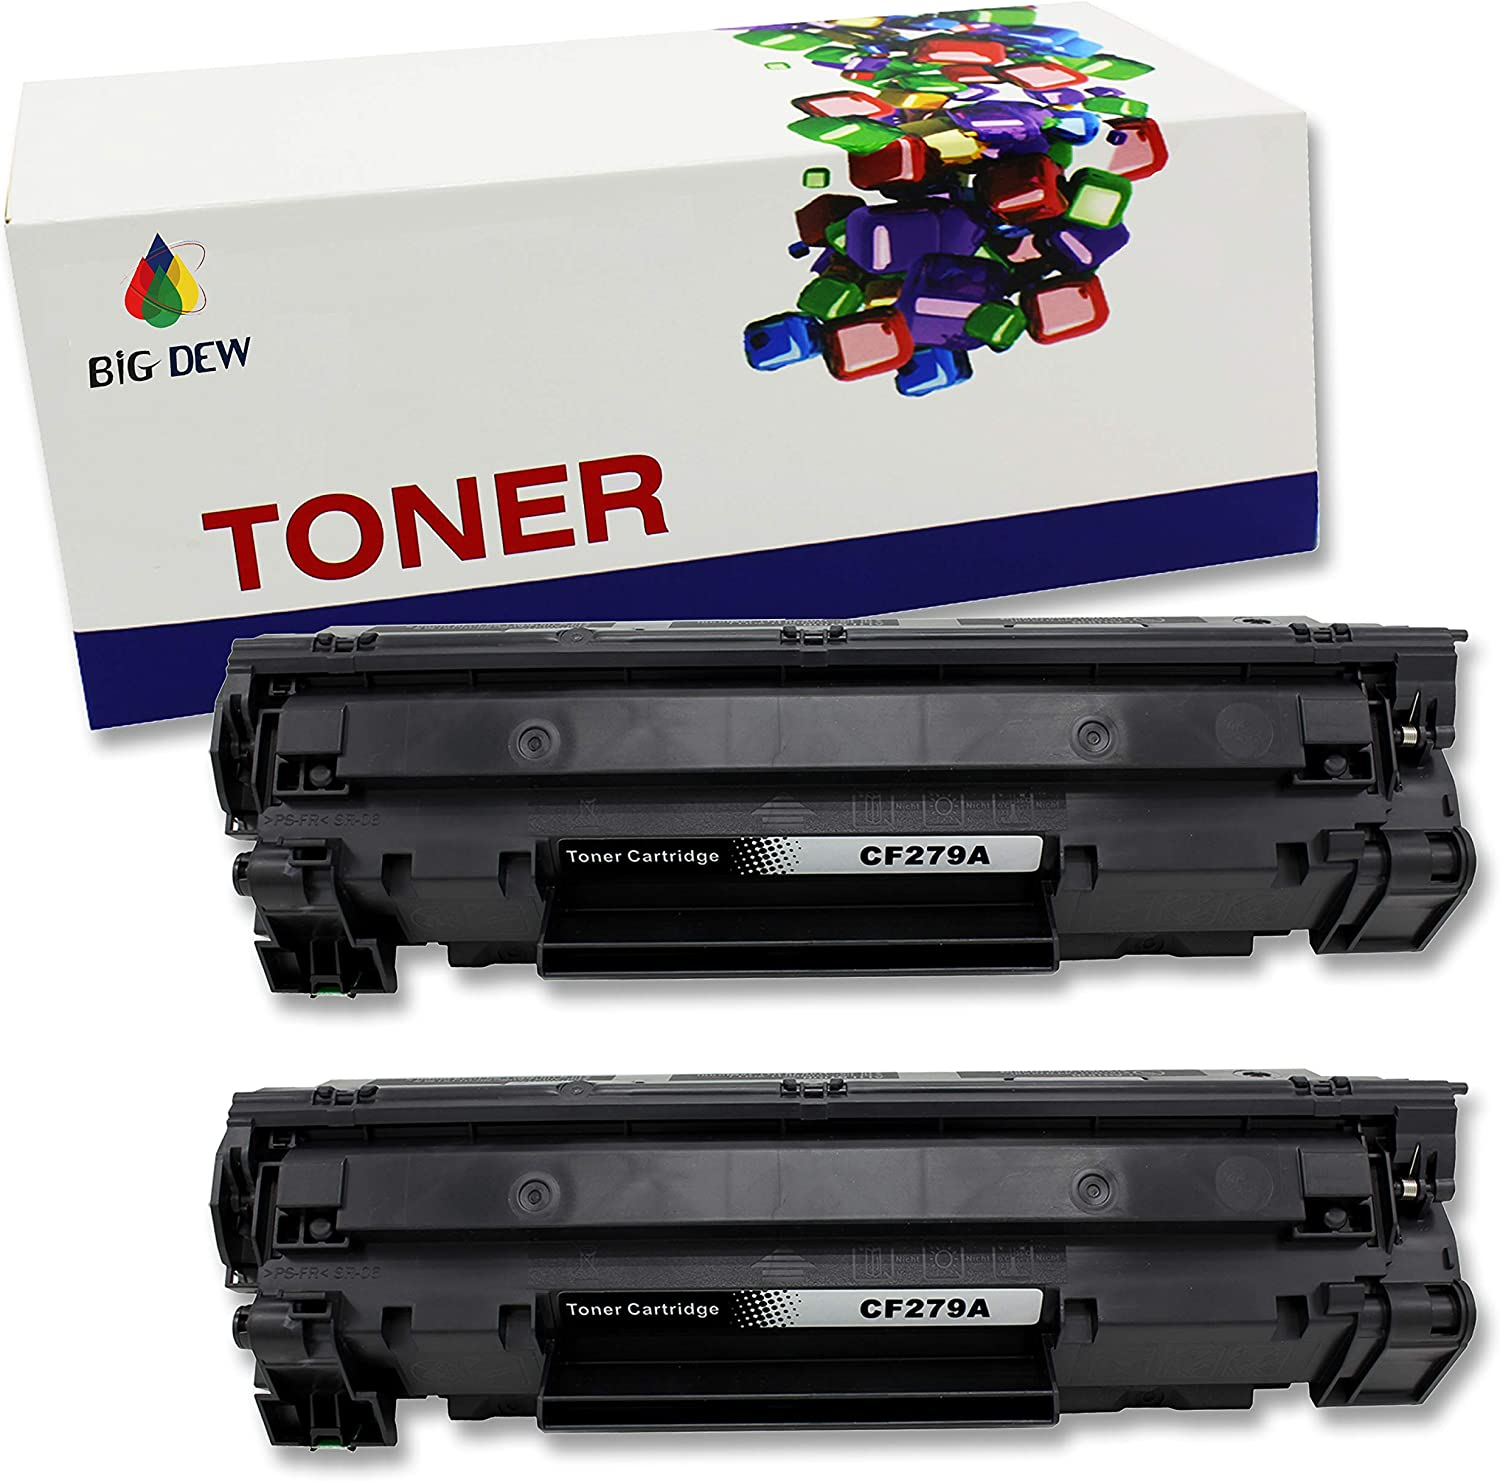 Big Dew Compatible Toner Cartridge Replacement for HP CF279A 79A Toner Cartridge for Laserjet Pro M12a, M12w, MFP M26a, M26nw Printer(2-Pack)